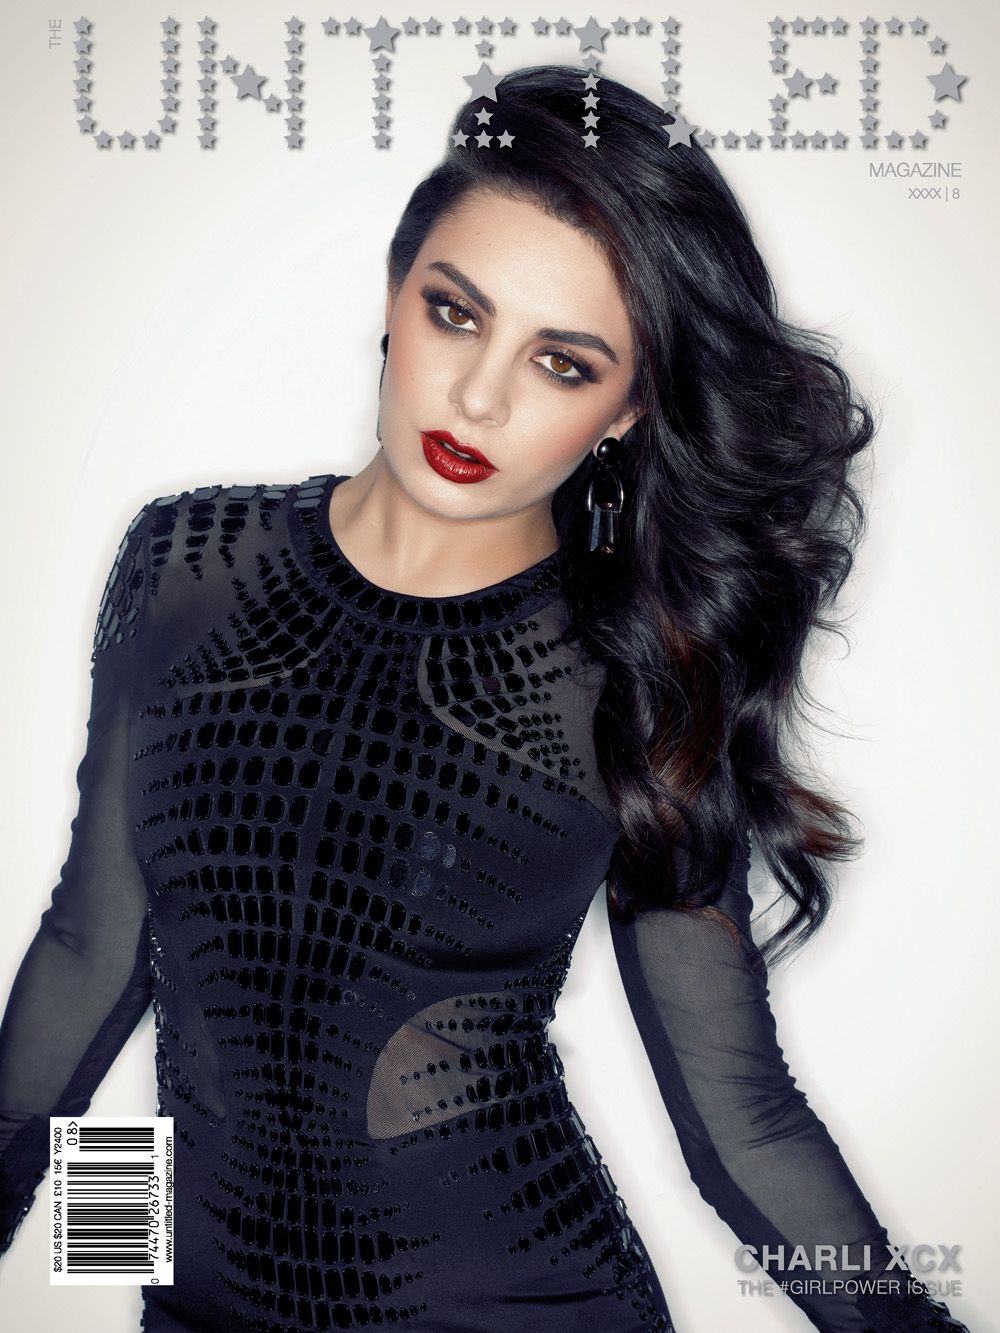 The-Untitled-Magazine-Issue-8-Charli-XCX-Cover-LR.jpg